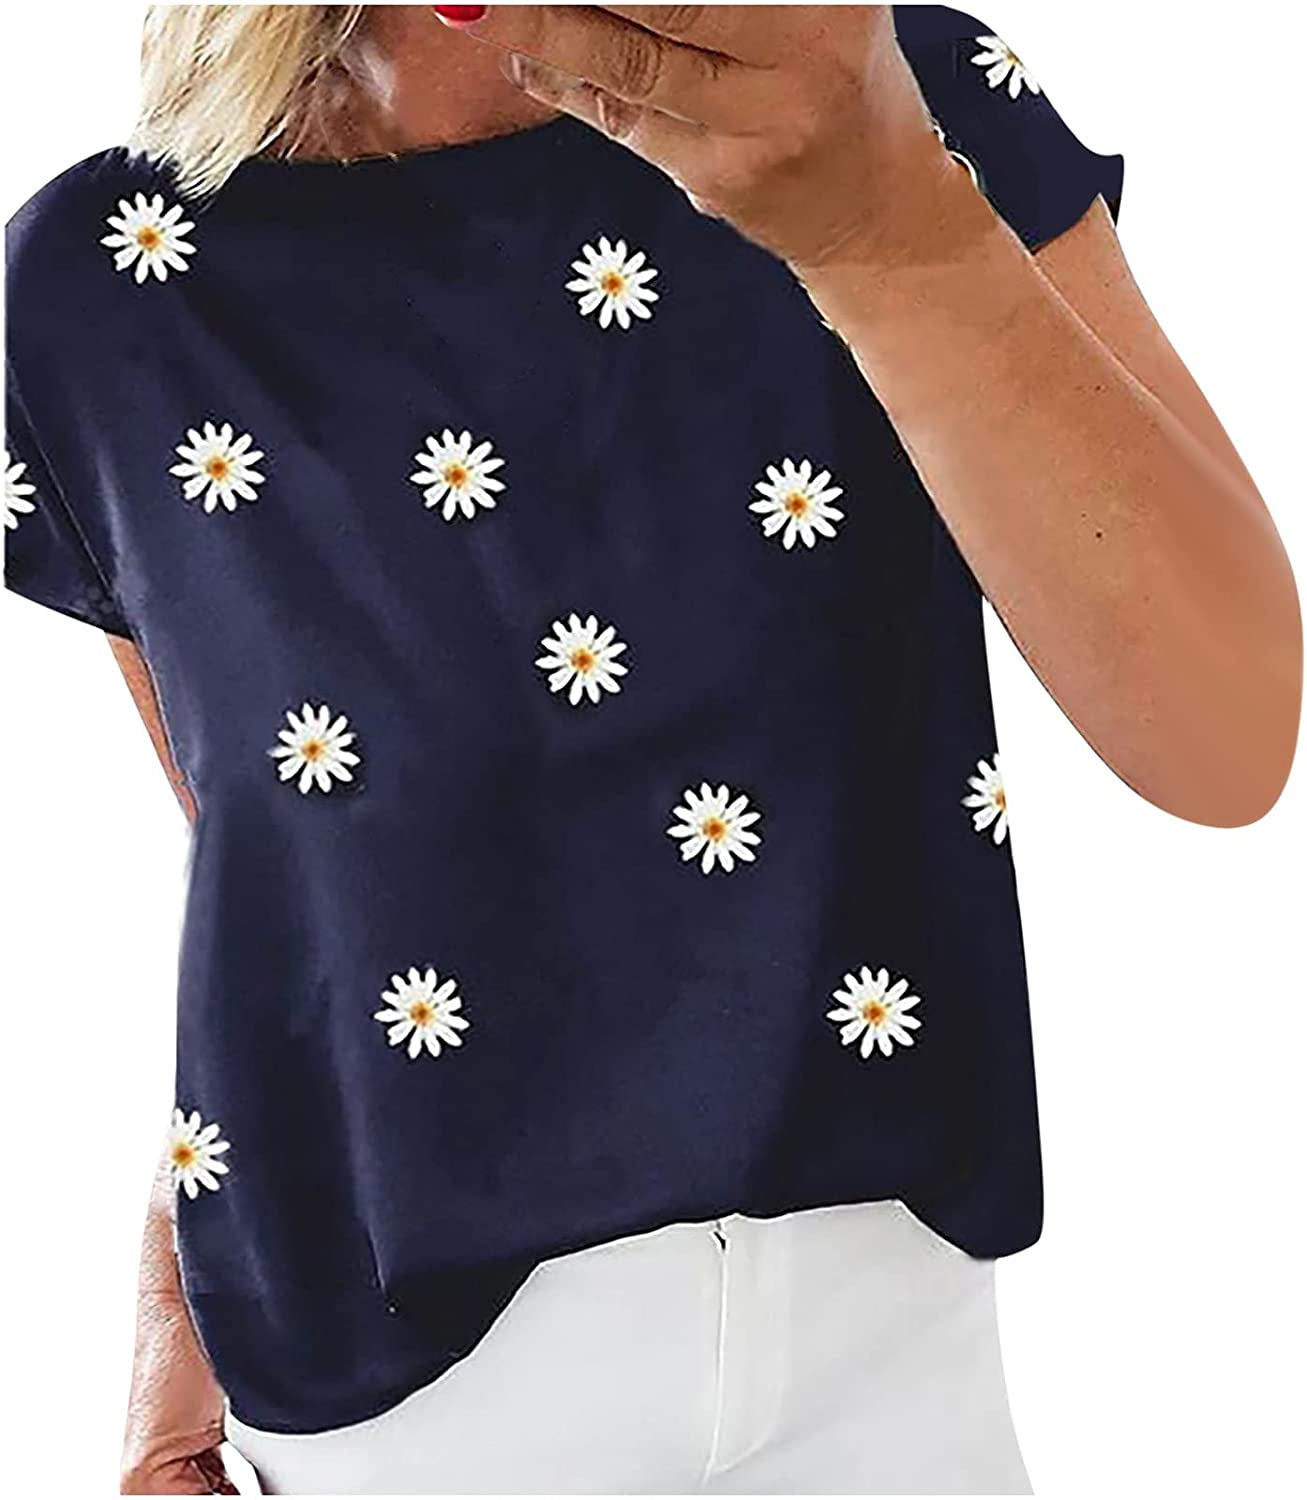 Graphic Tops for Womens Funny Sunflower Printed Tee Shirts Loose Fit Short Sleeve Summer T-Shirts Tee Tops